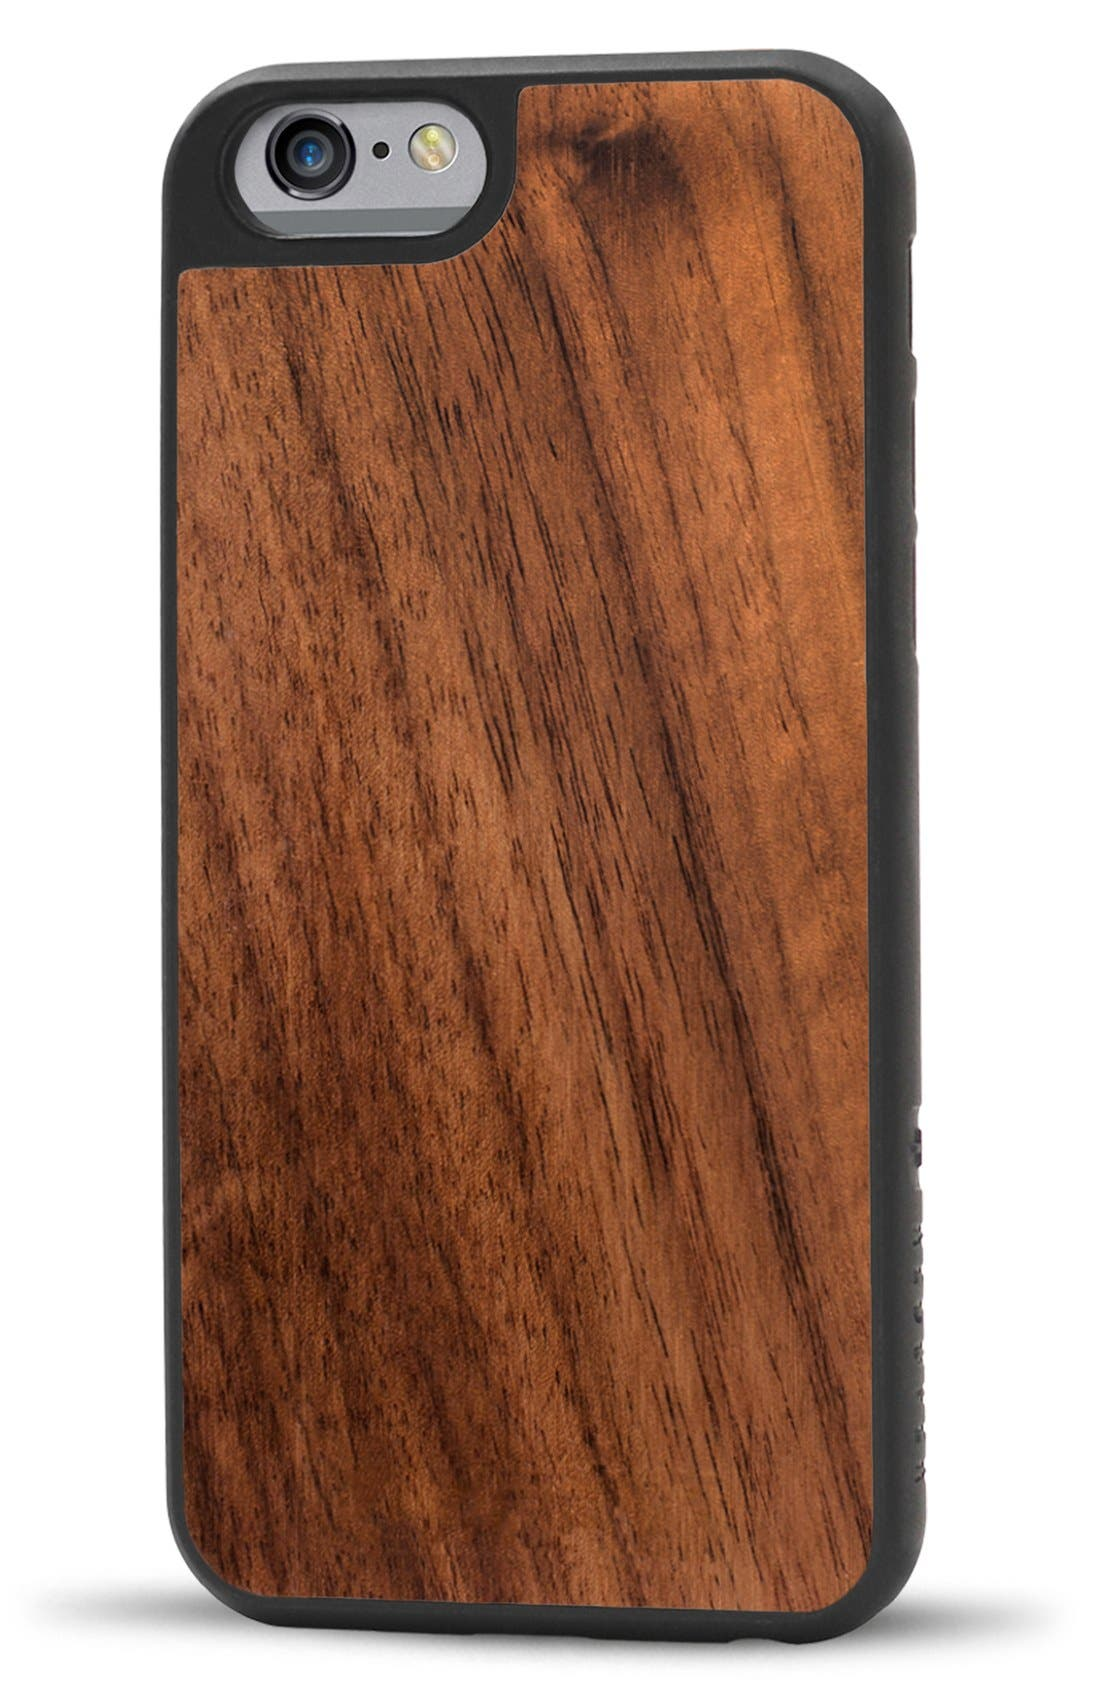 Alternate Image 1 Selected - Recover Walnut Wood iPhone 6/6s Case